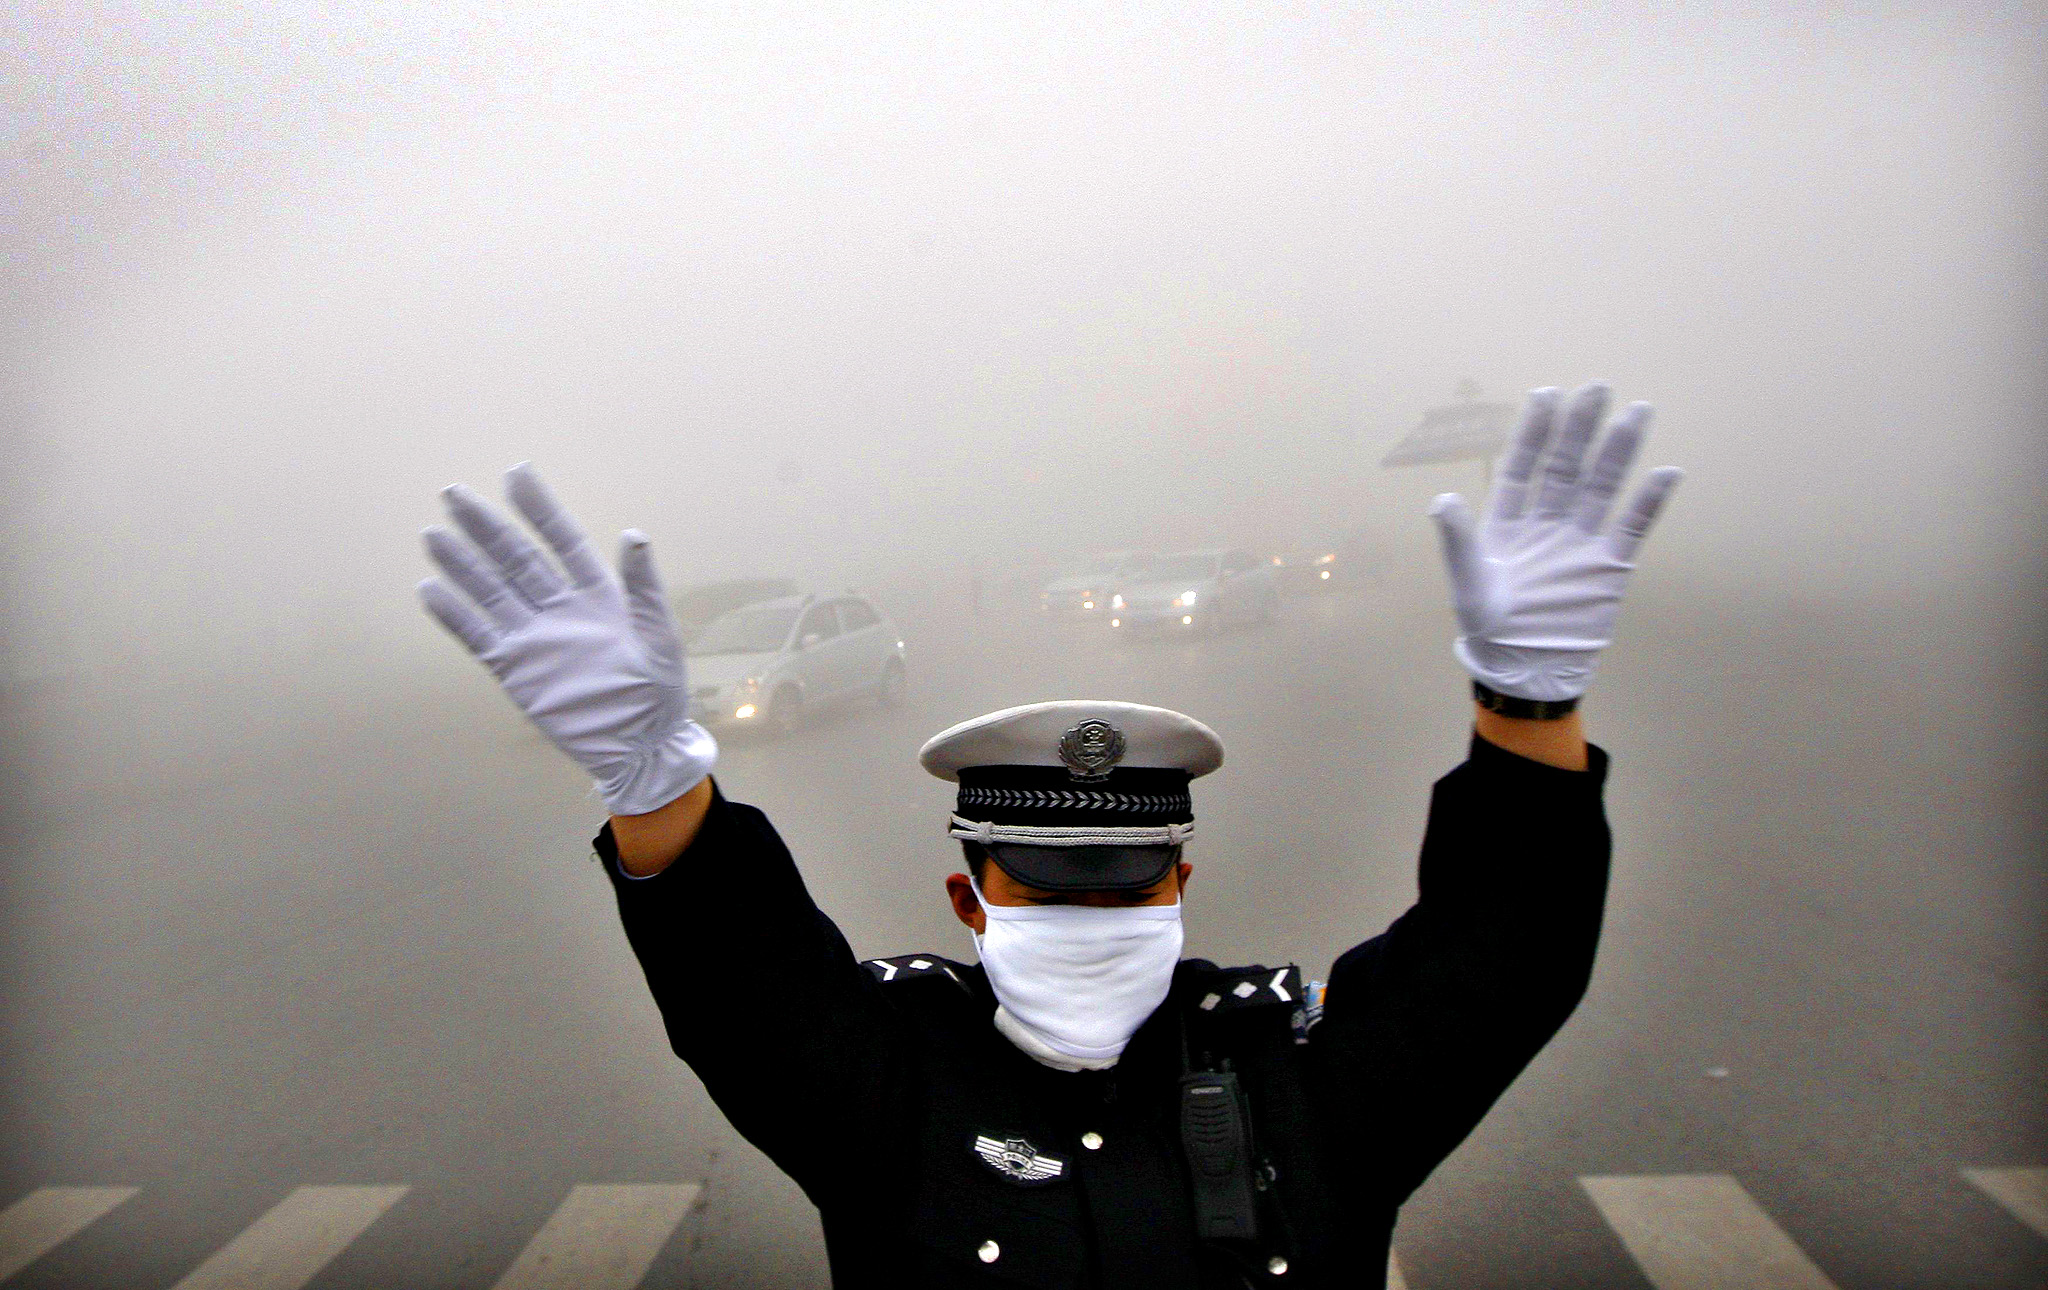 A traffic policeman signals to drivers during a smoggy day in Harbin, Heilongjiang province, October 21, 2013. The second day of heavy smog with a PM 2.5 index has forced the closure of schools and highways, exceeding 500 micrograms per cubic meter on Monday morning in downtown Harbin, according to Xinhua News Agency.